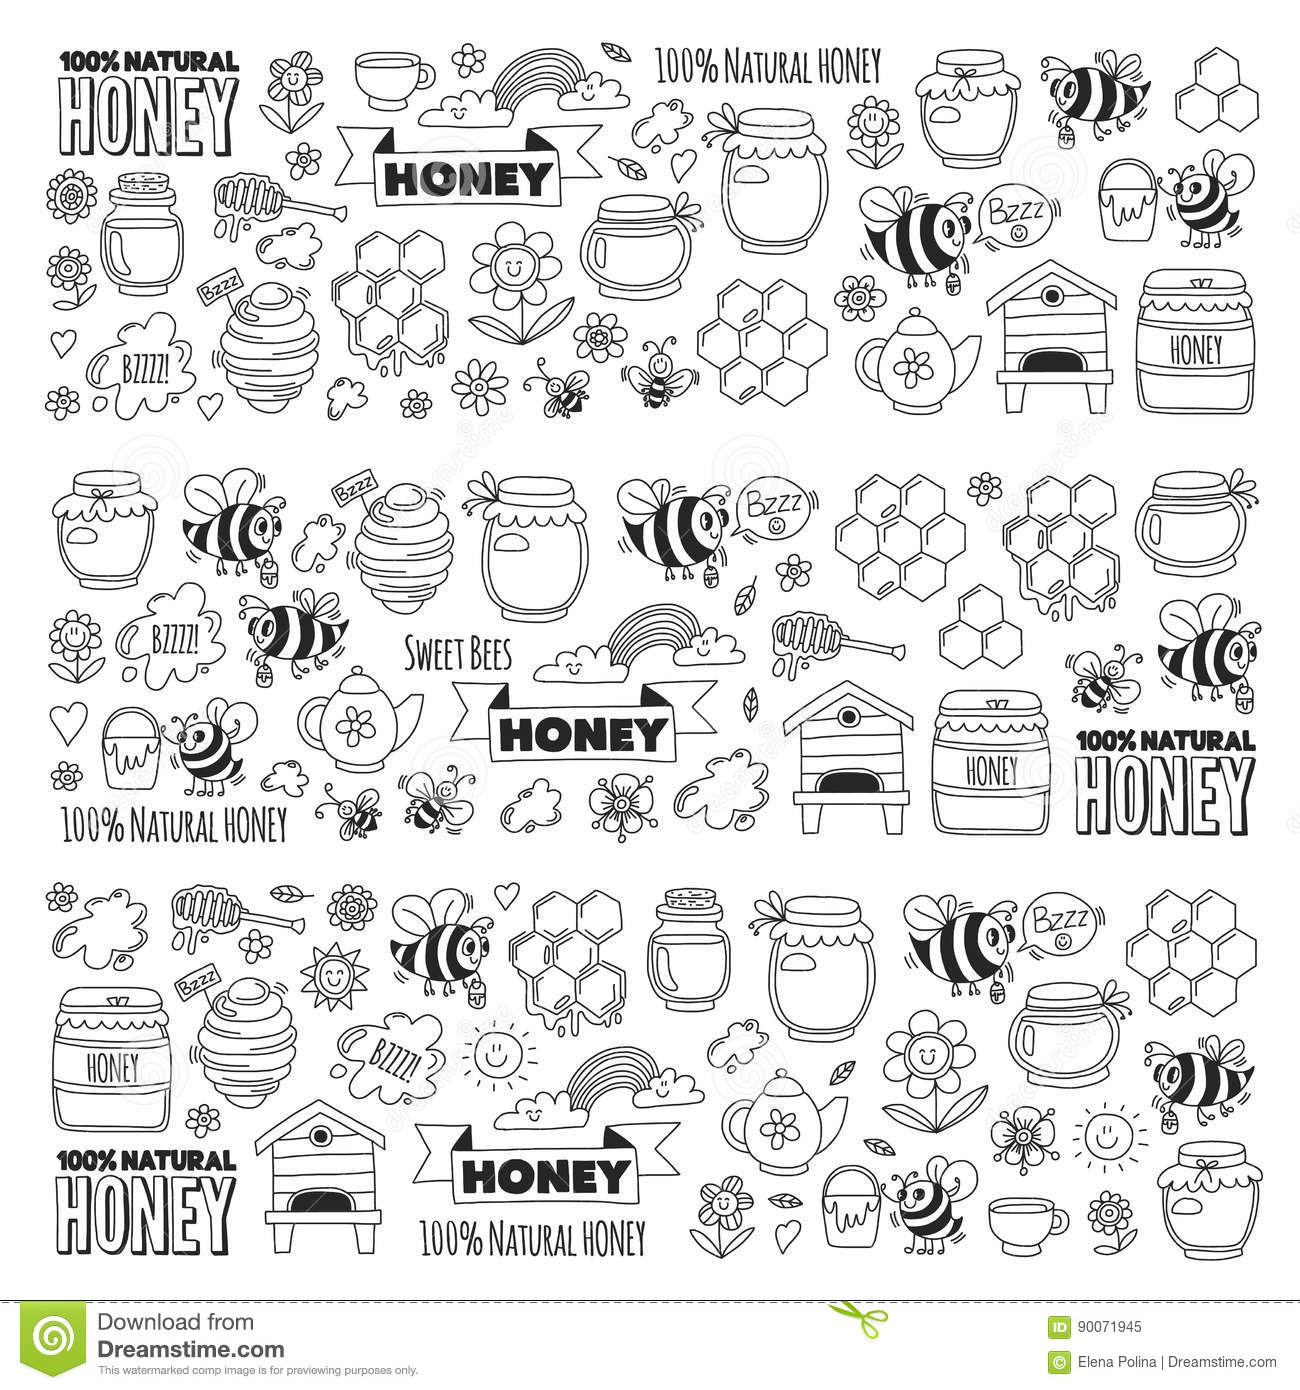 Honey market, bazaar, honey fair Doodle images of bees, flowers, jars, honeycomb, beehive, spot, the keg with lettering